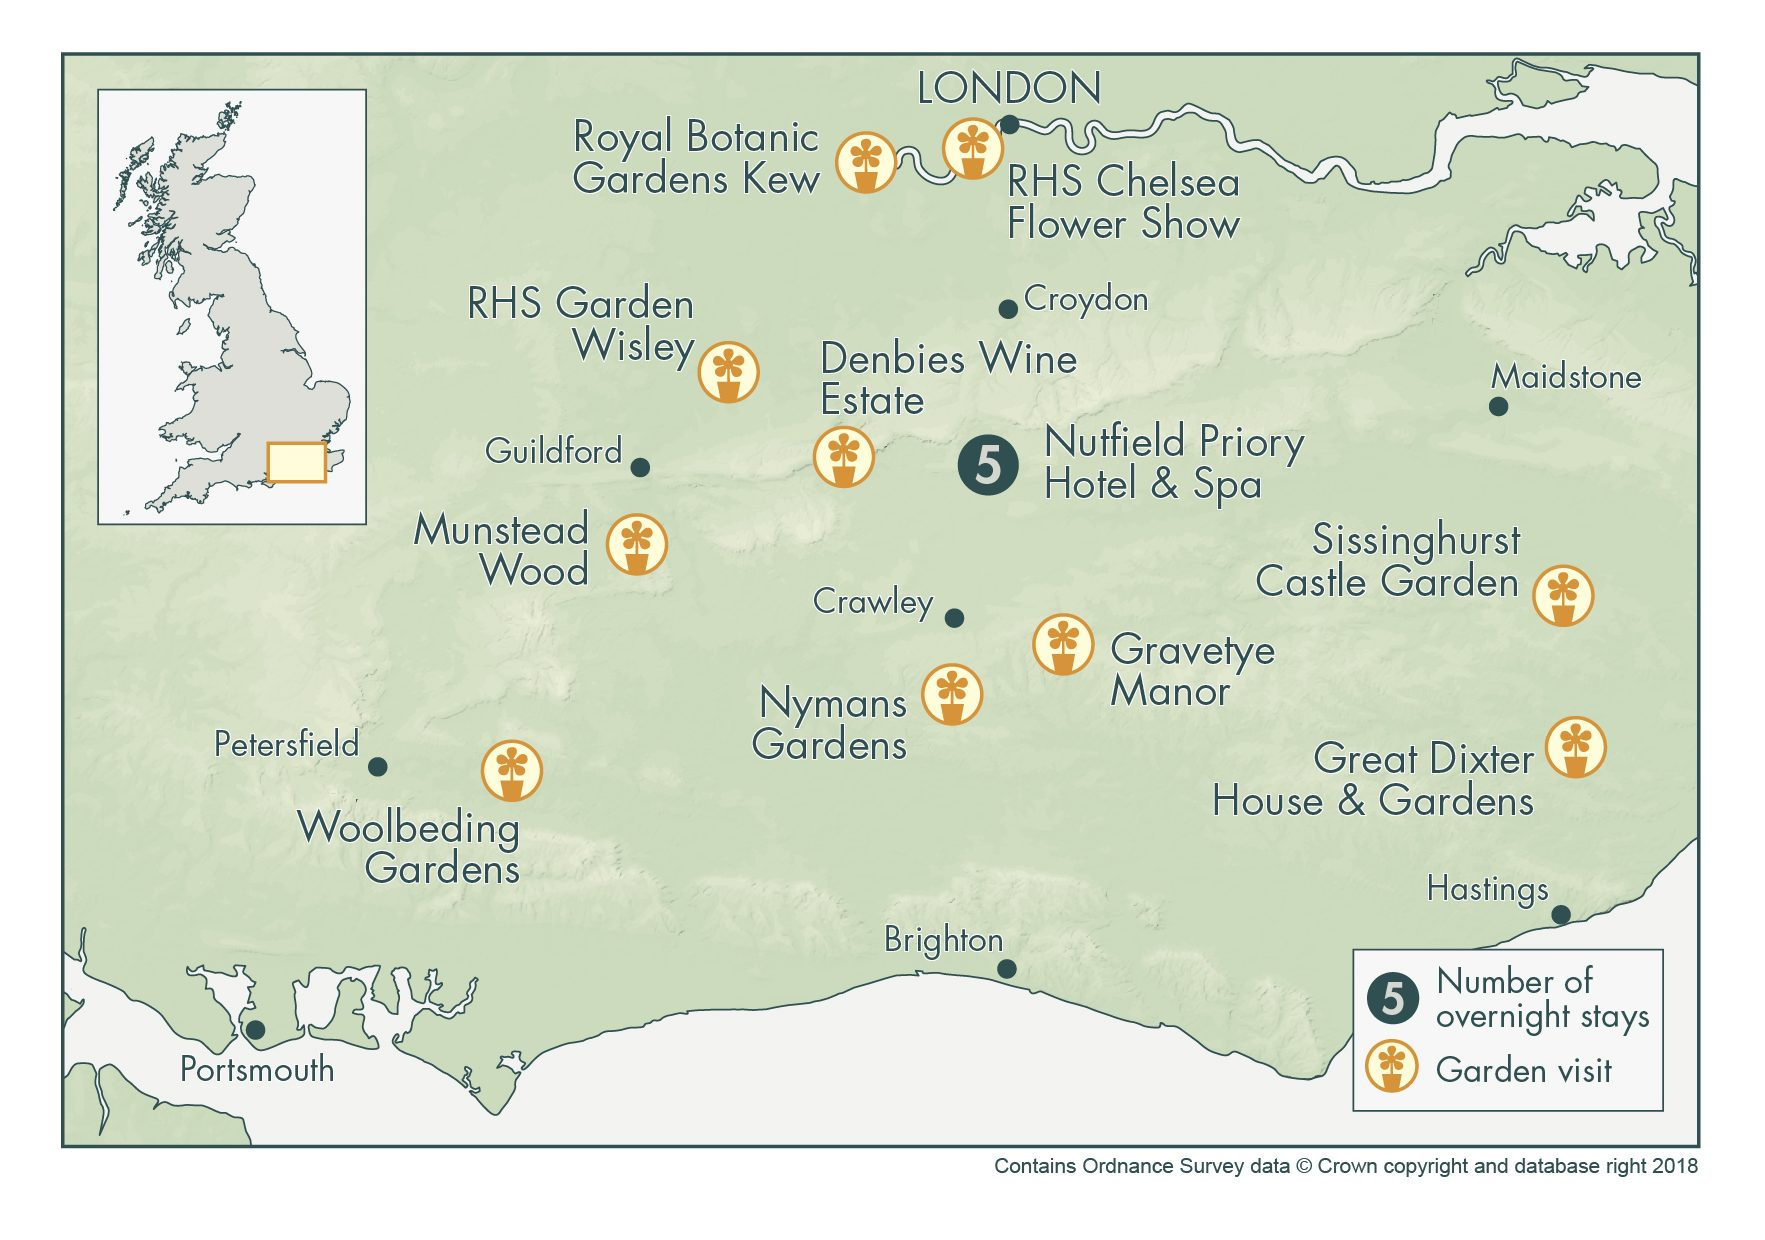 RHS Chelsea Flower Show and Iconic English Gardens